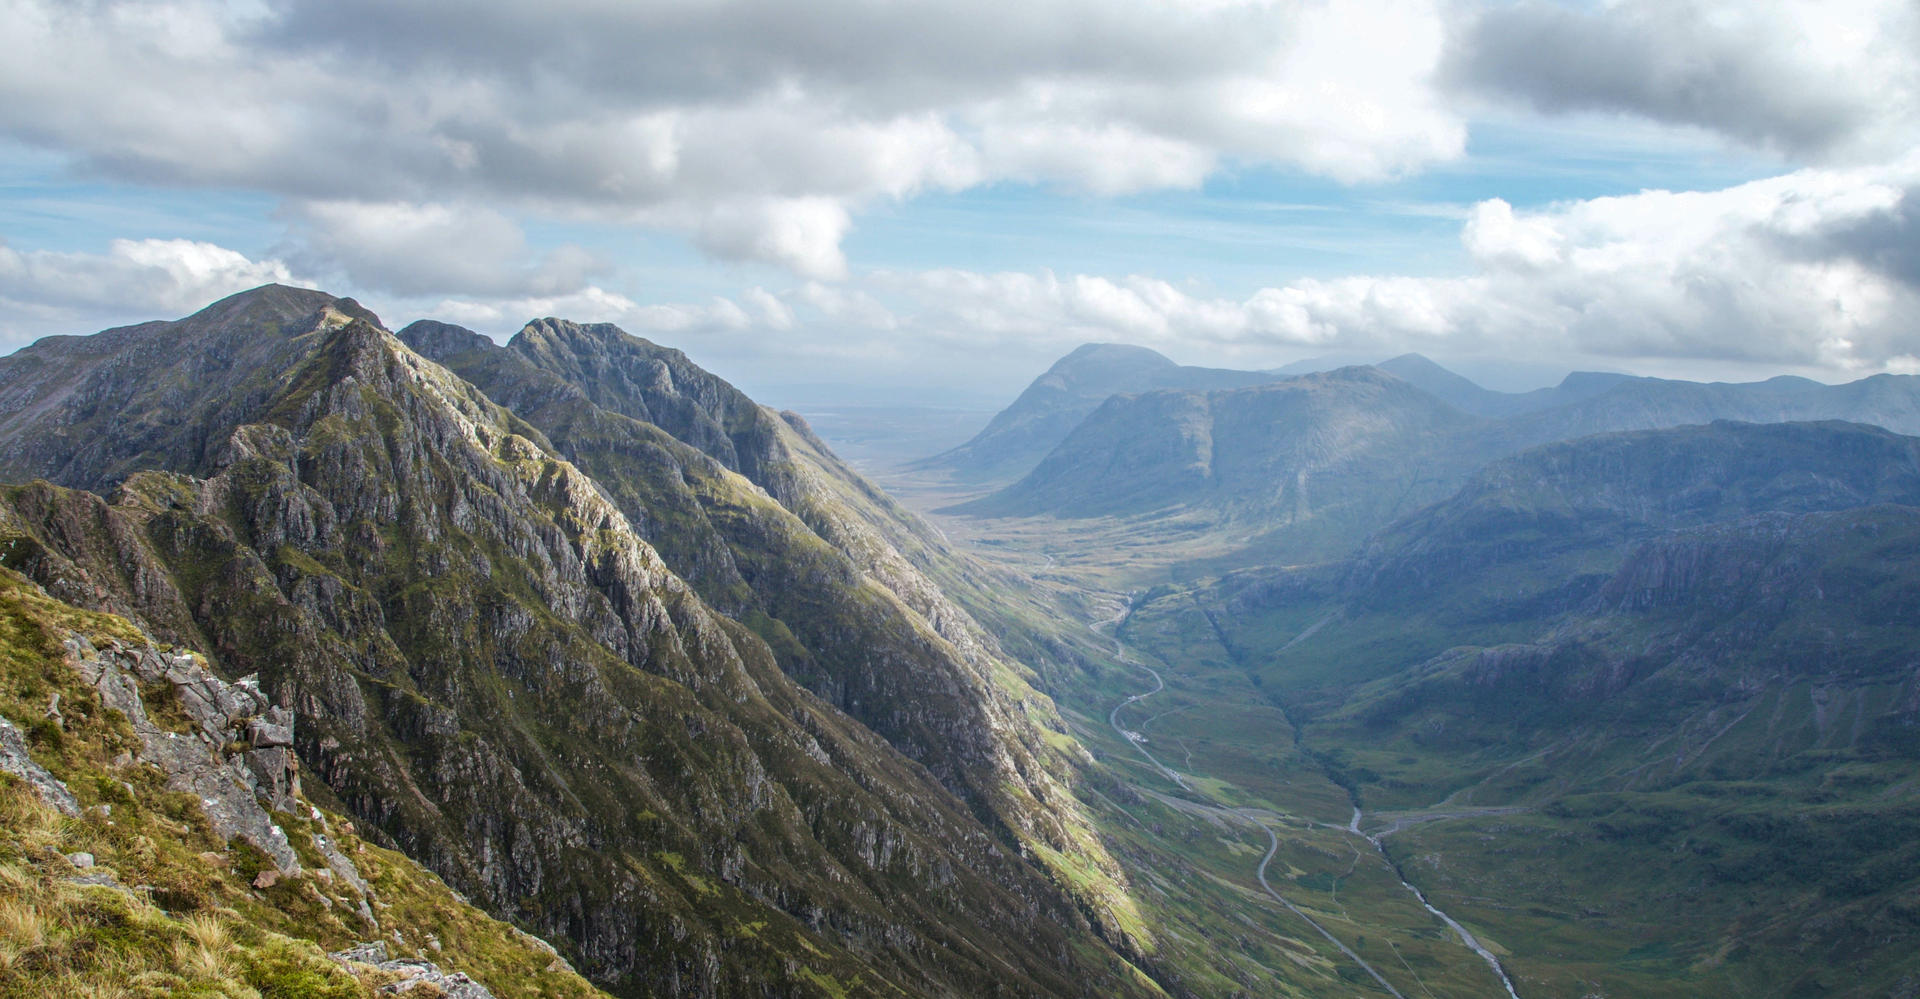 mountain landscape of glencoe scotland seen from high on peak with sunny sky and clouds